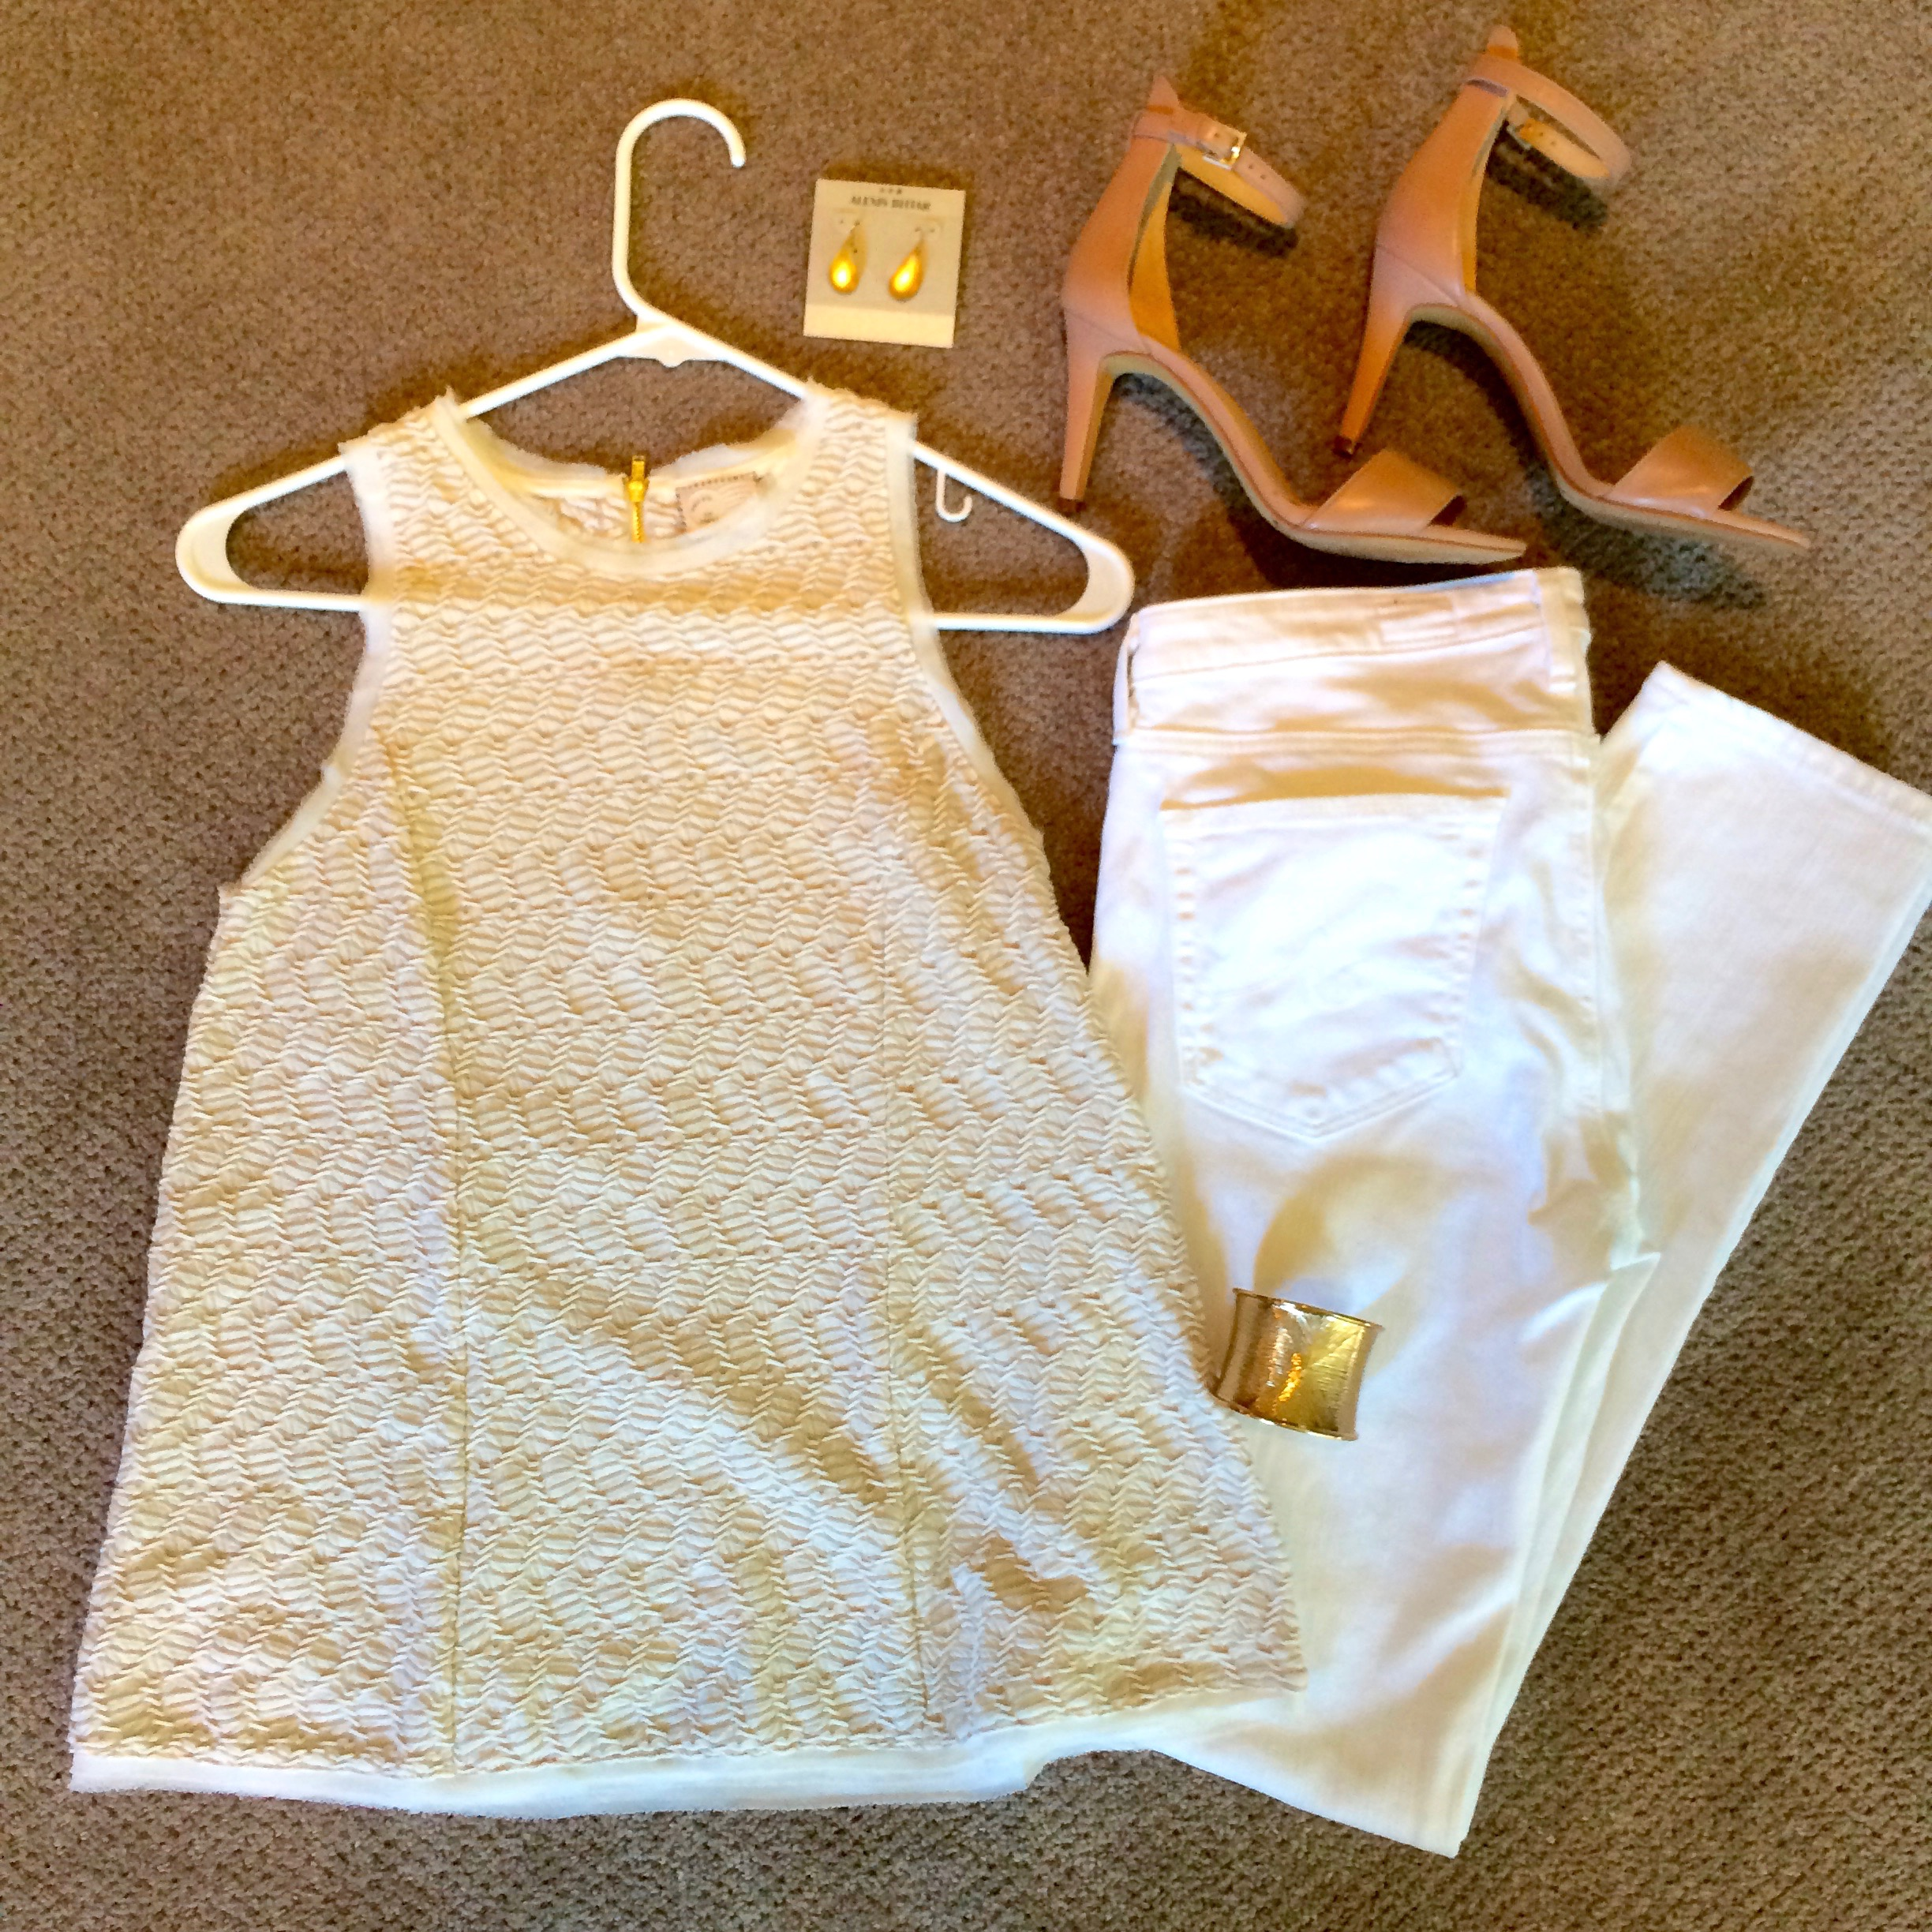 I created this look for   a client  , as a fun 'date night' outfit that's a bit different from her everyday. The best thing is that it's so simple - a textured ivory top, white jeans, wear-with-everything nude sandals, and some gold jewelry, and she's out the door...